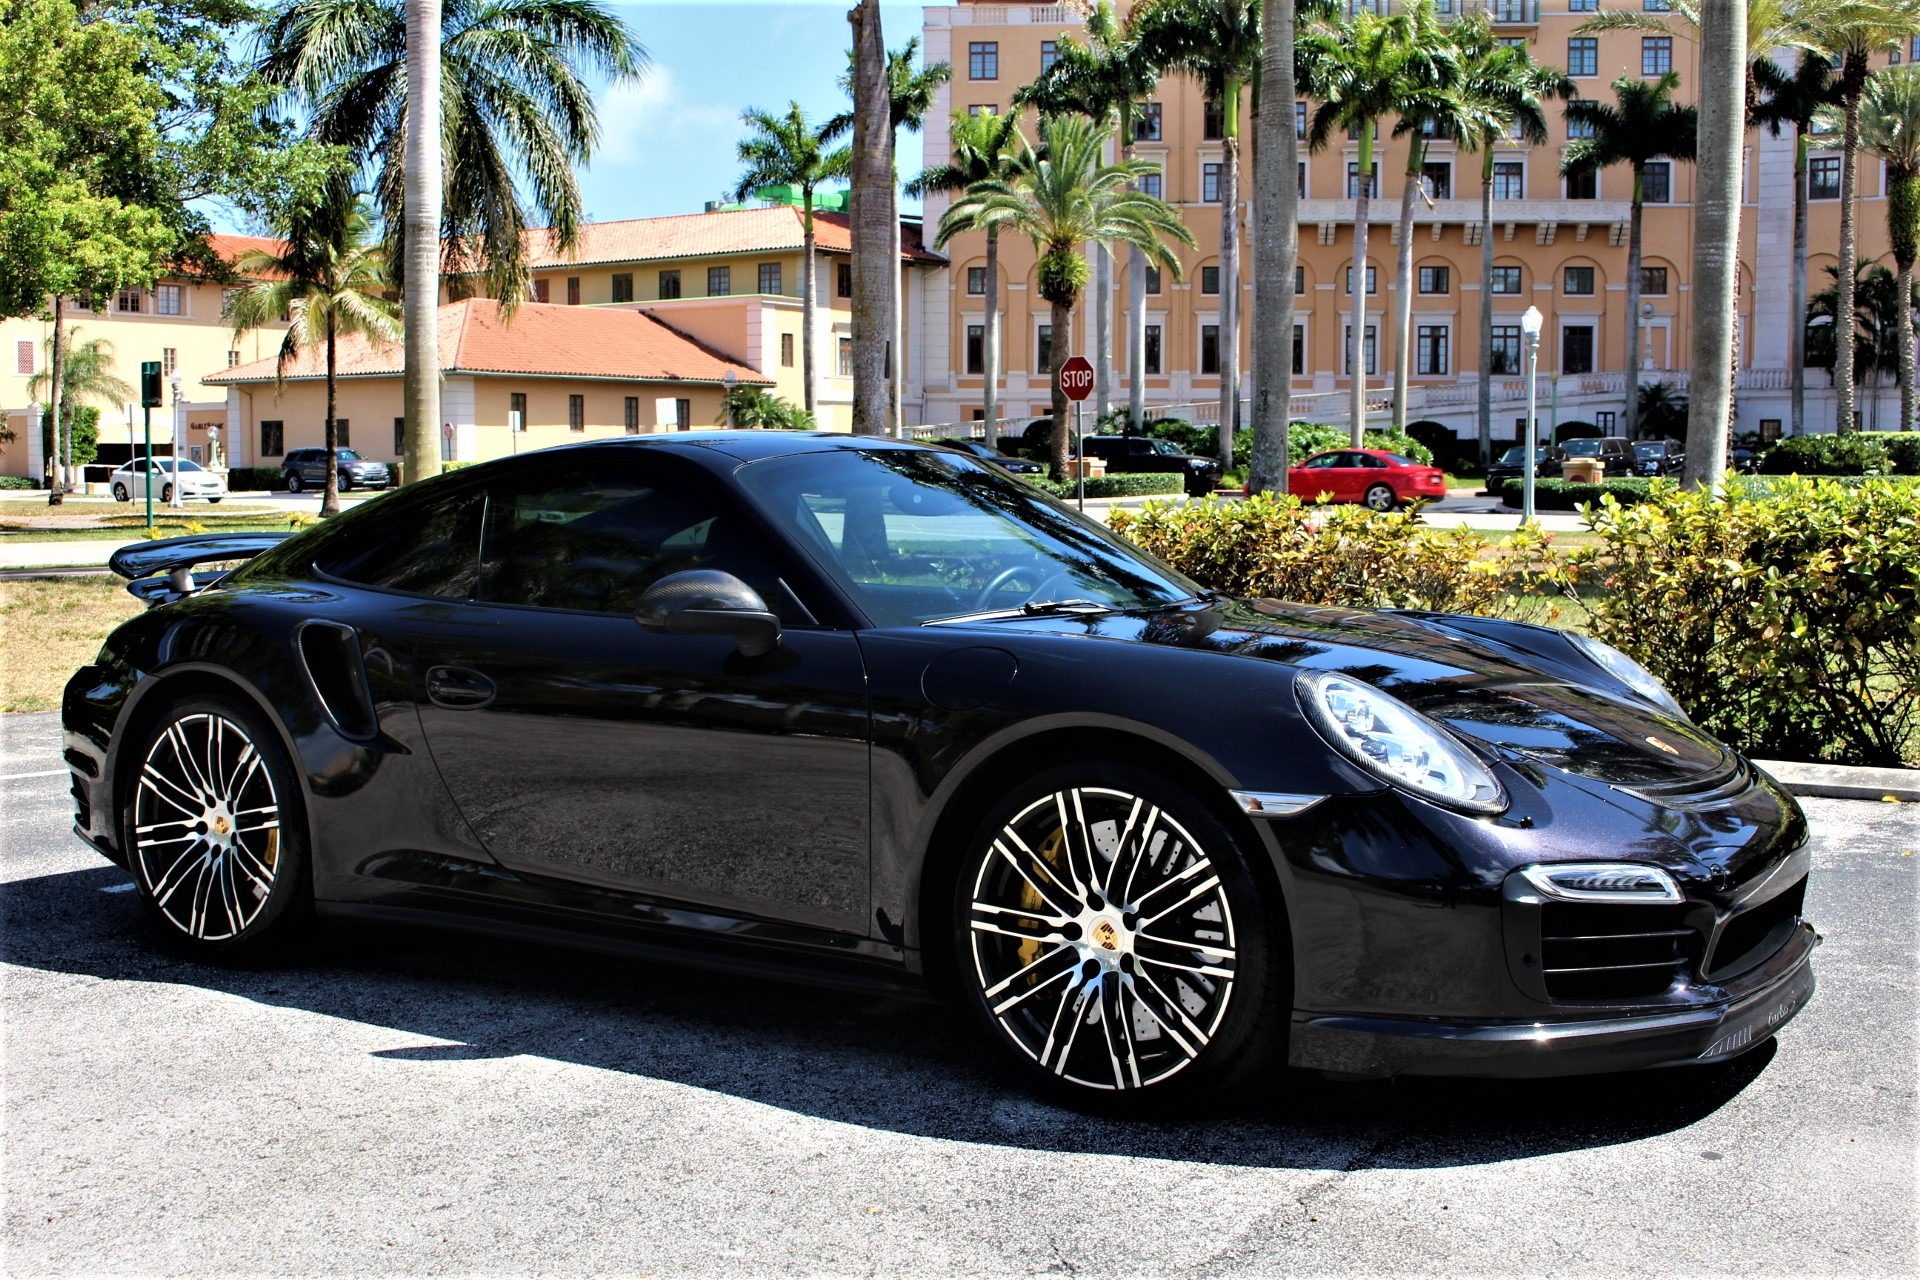 Used 2014 Porsche 911 Turbo S for sale $118,890 at The Gables Sports Cars in Miami FL 33146 3